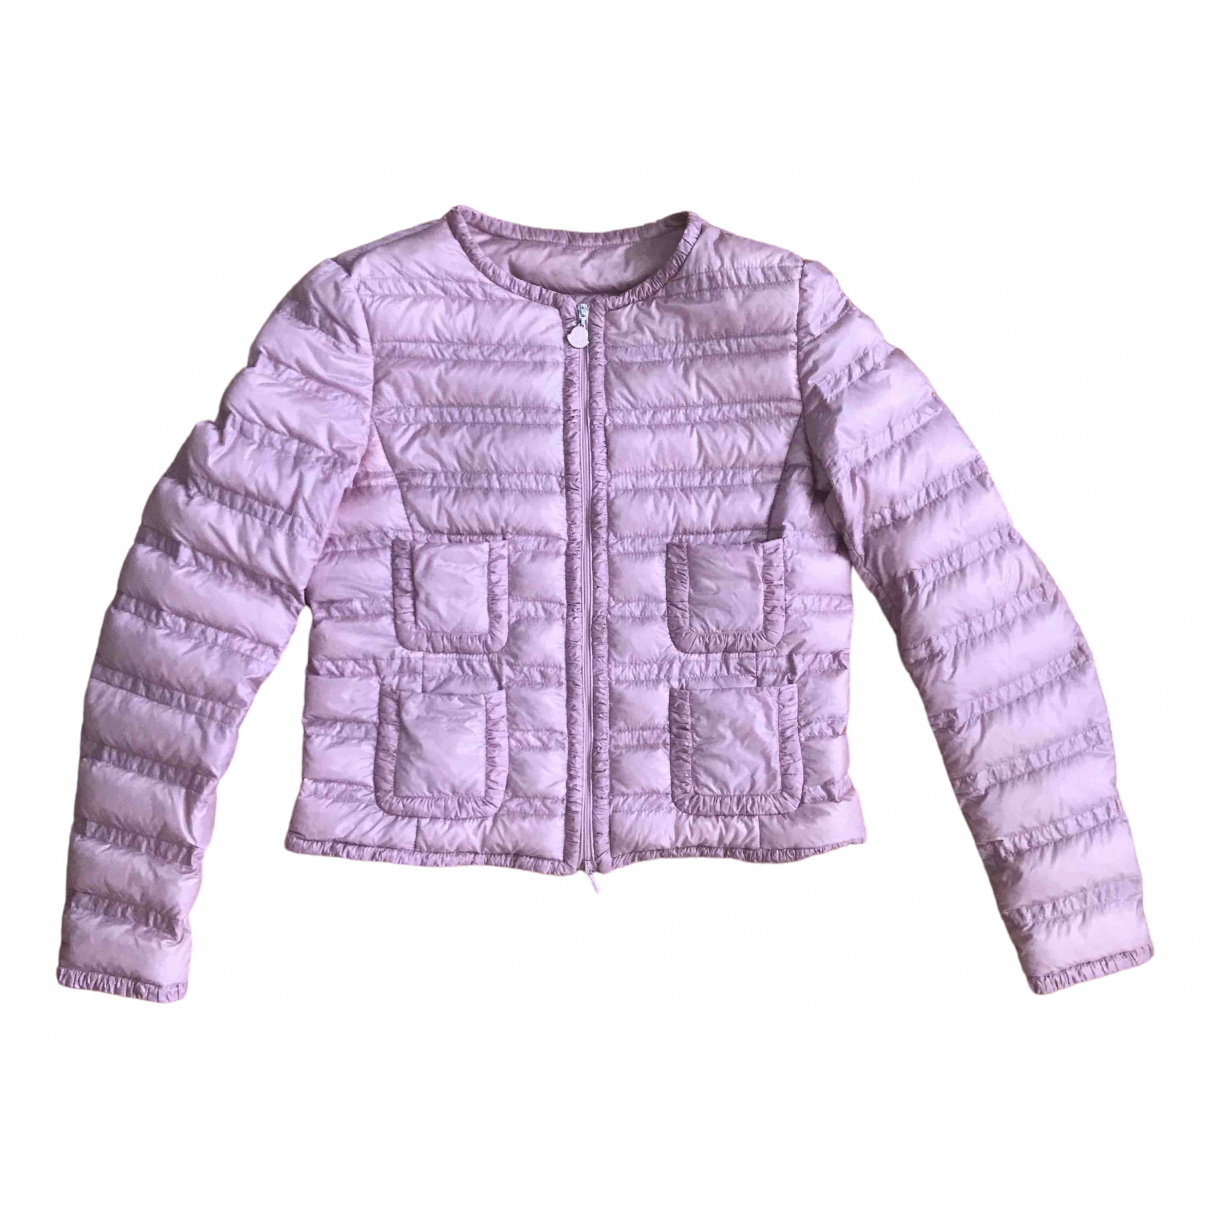 Moncler \N Pink coat for Women 0 0-5